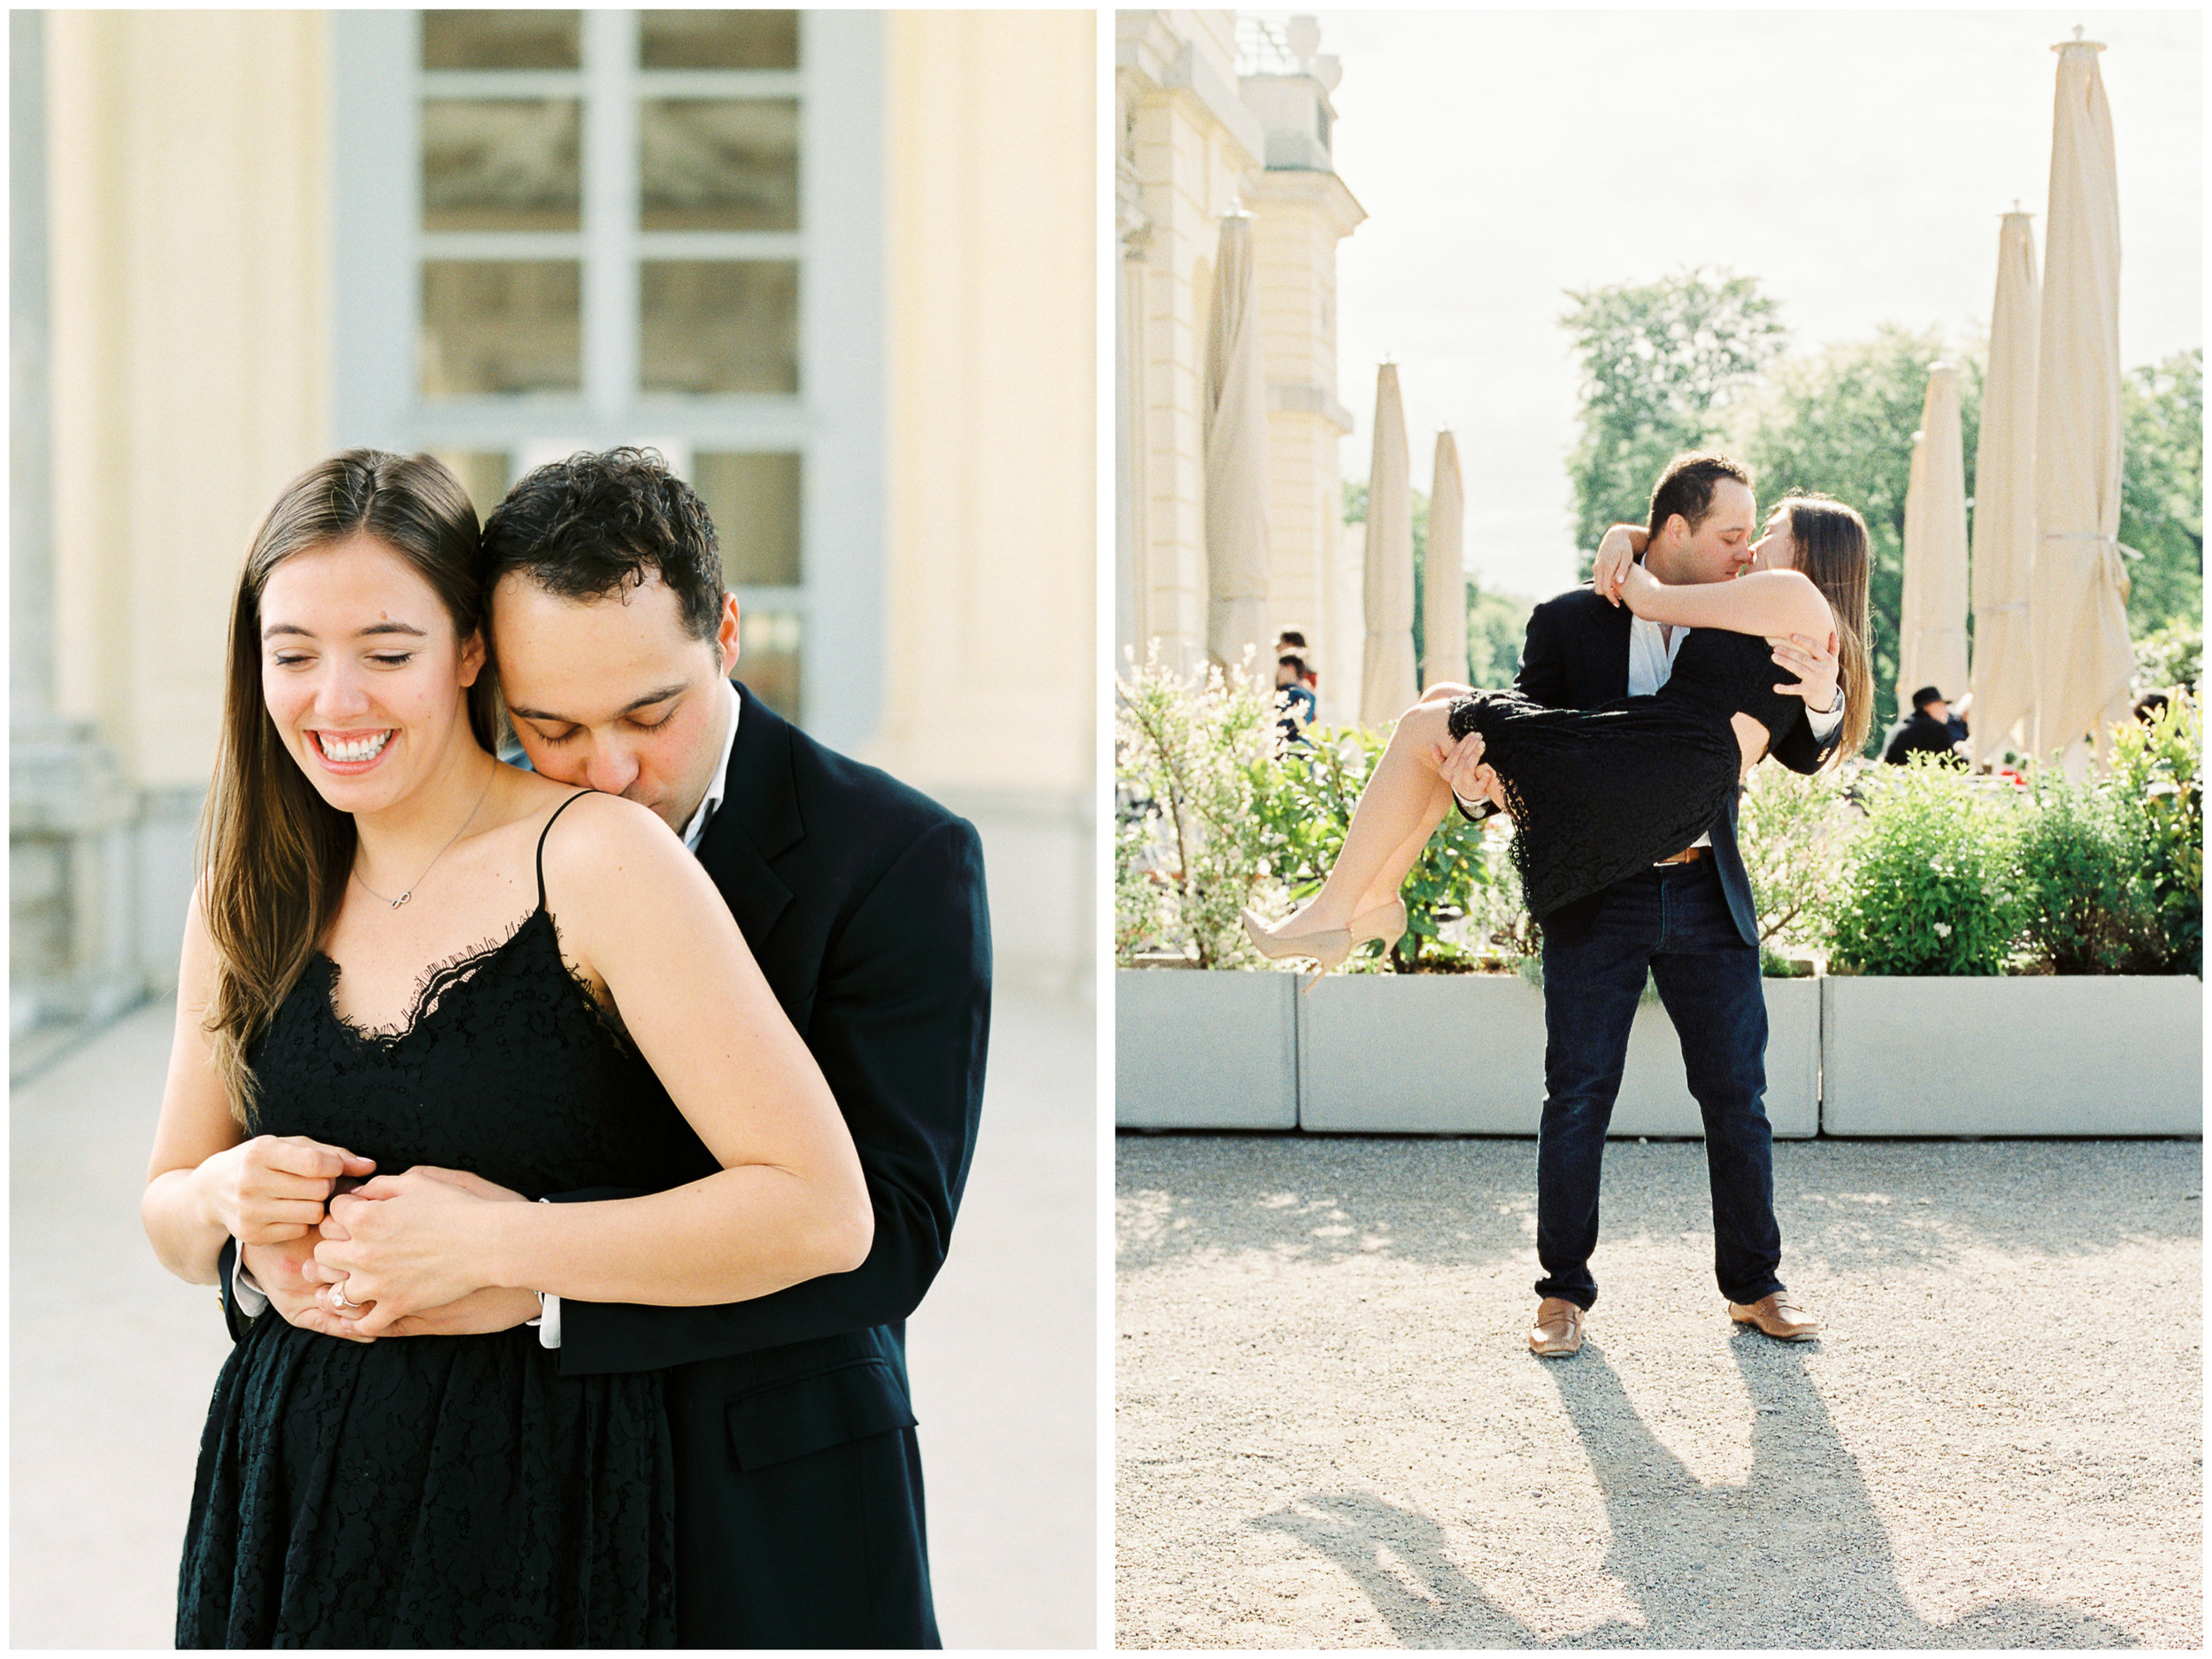 Engagement session | The Gloriette, Vienna | Michelle Mock Photography | Vienna Photographer | Contax 645 | Fuji400H